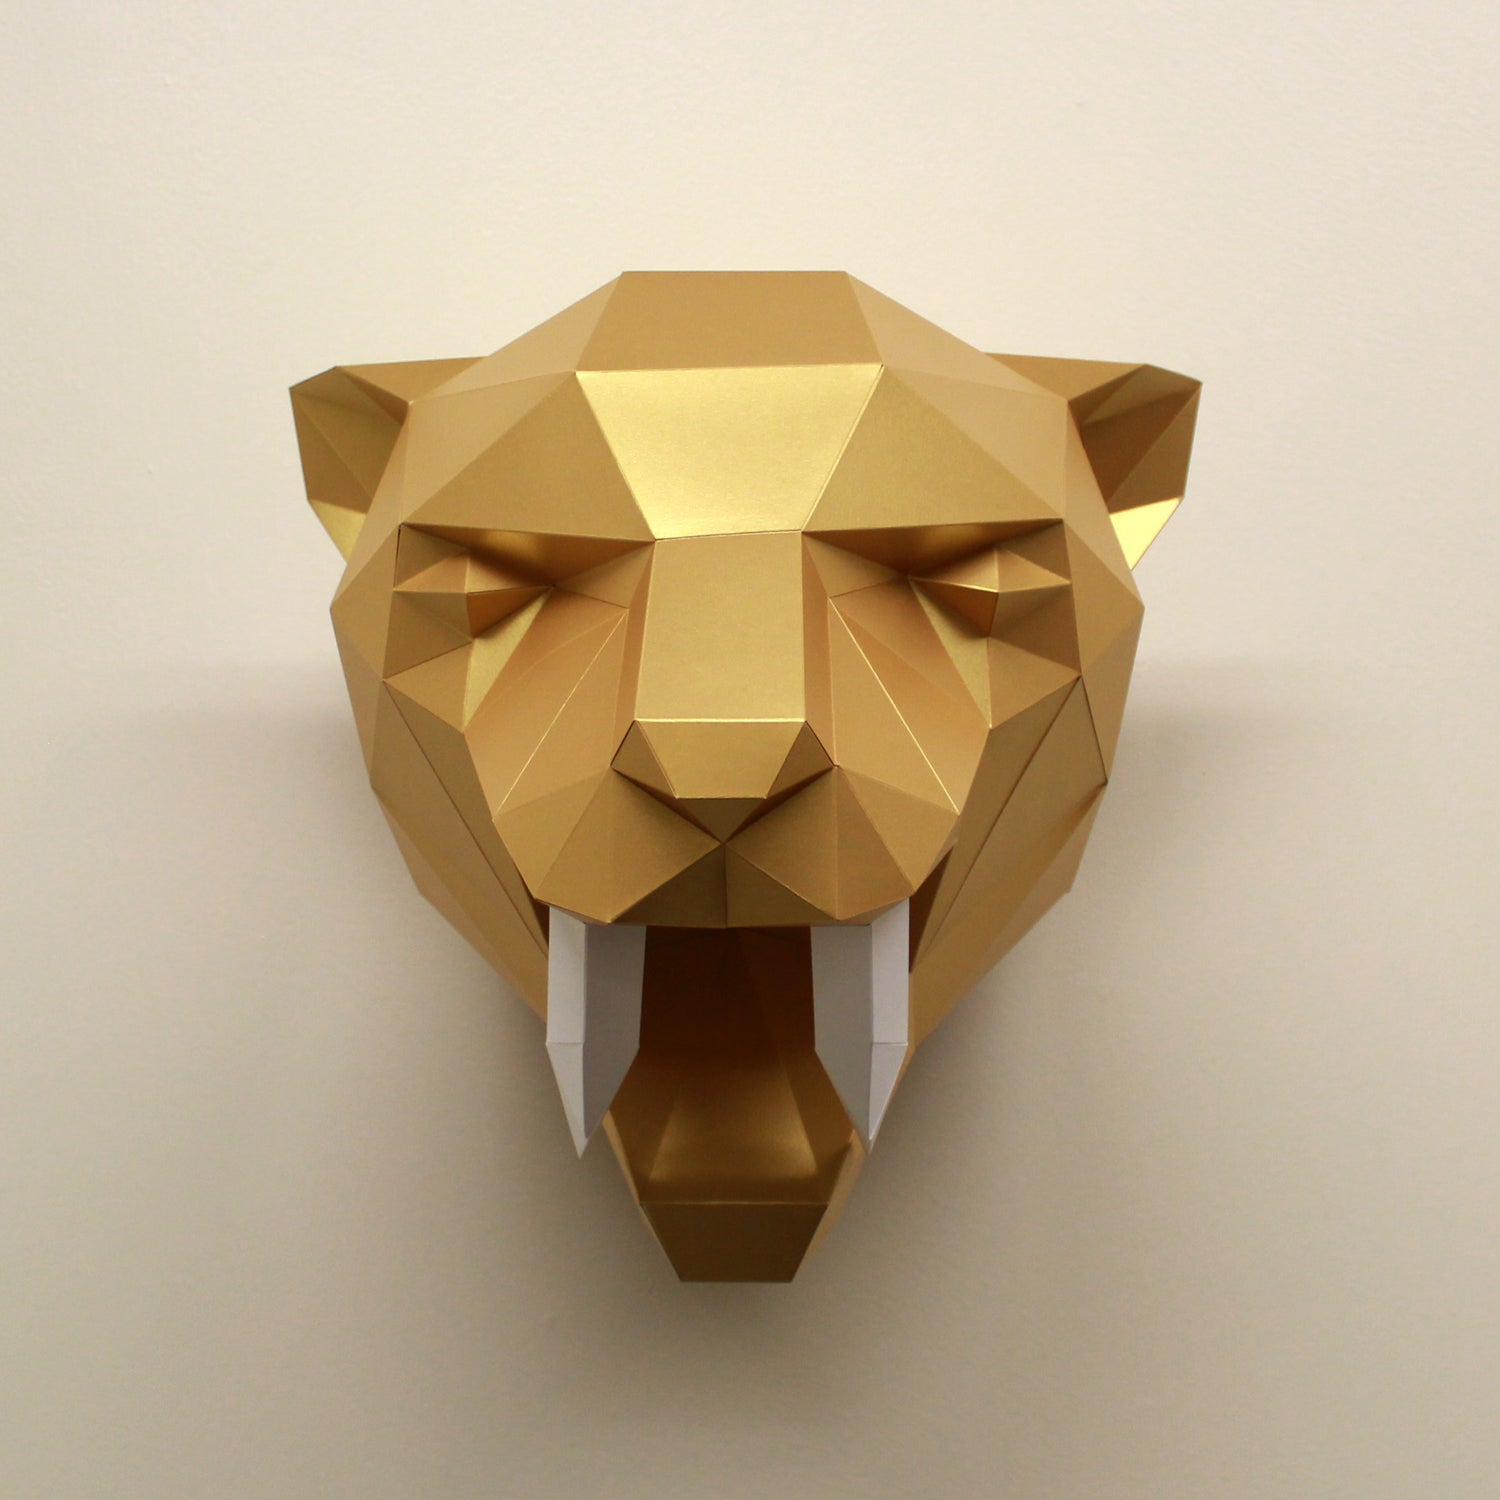 Fiona the Sabre-Tooth Tiger | DIY Papercraft Animal Kit